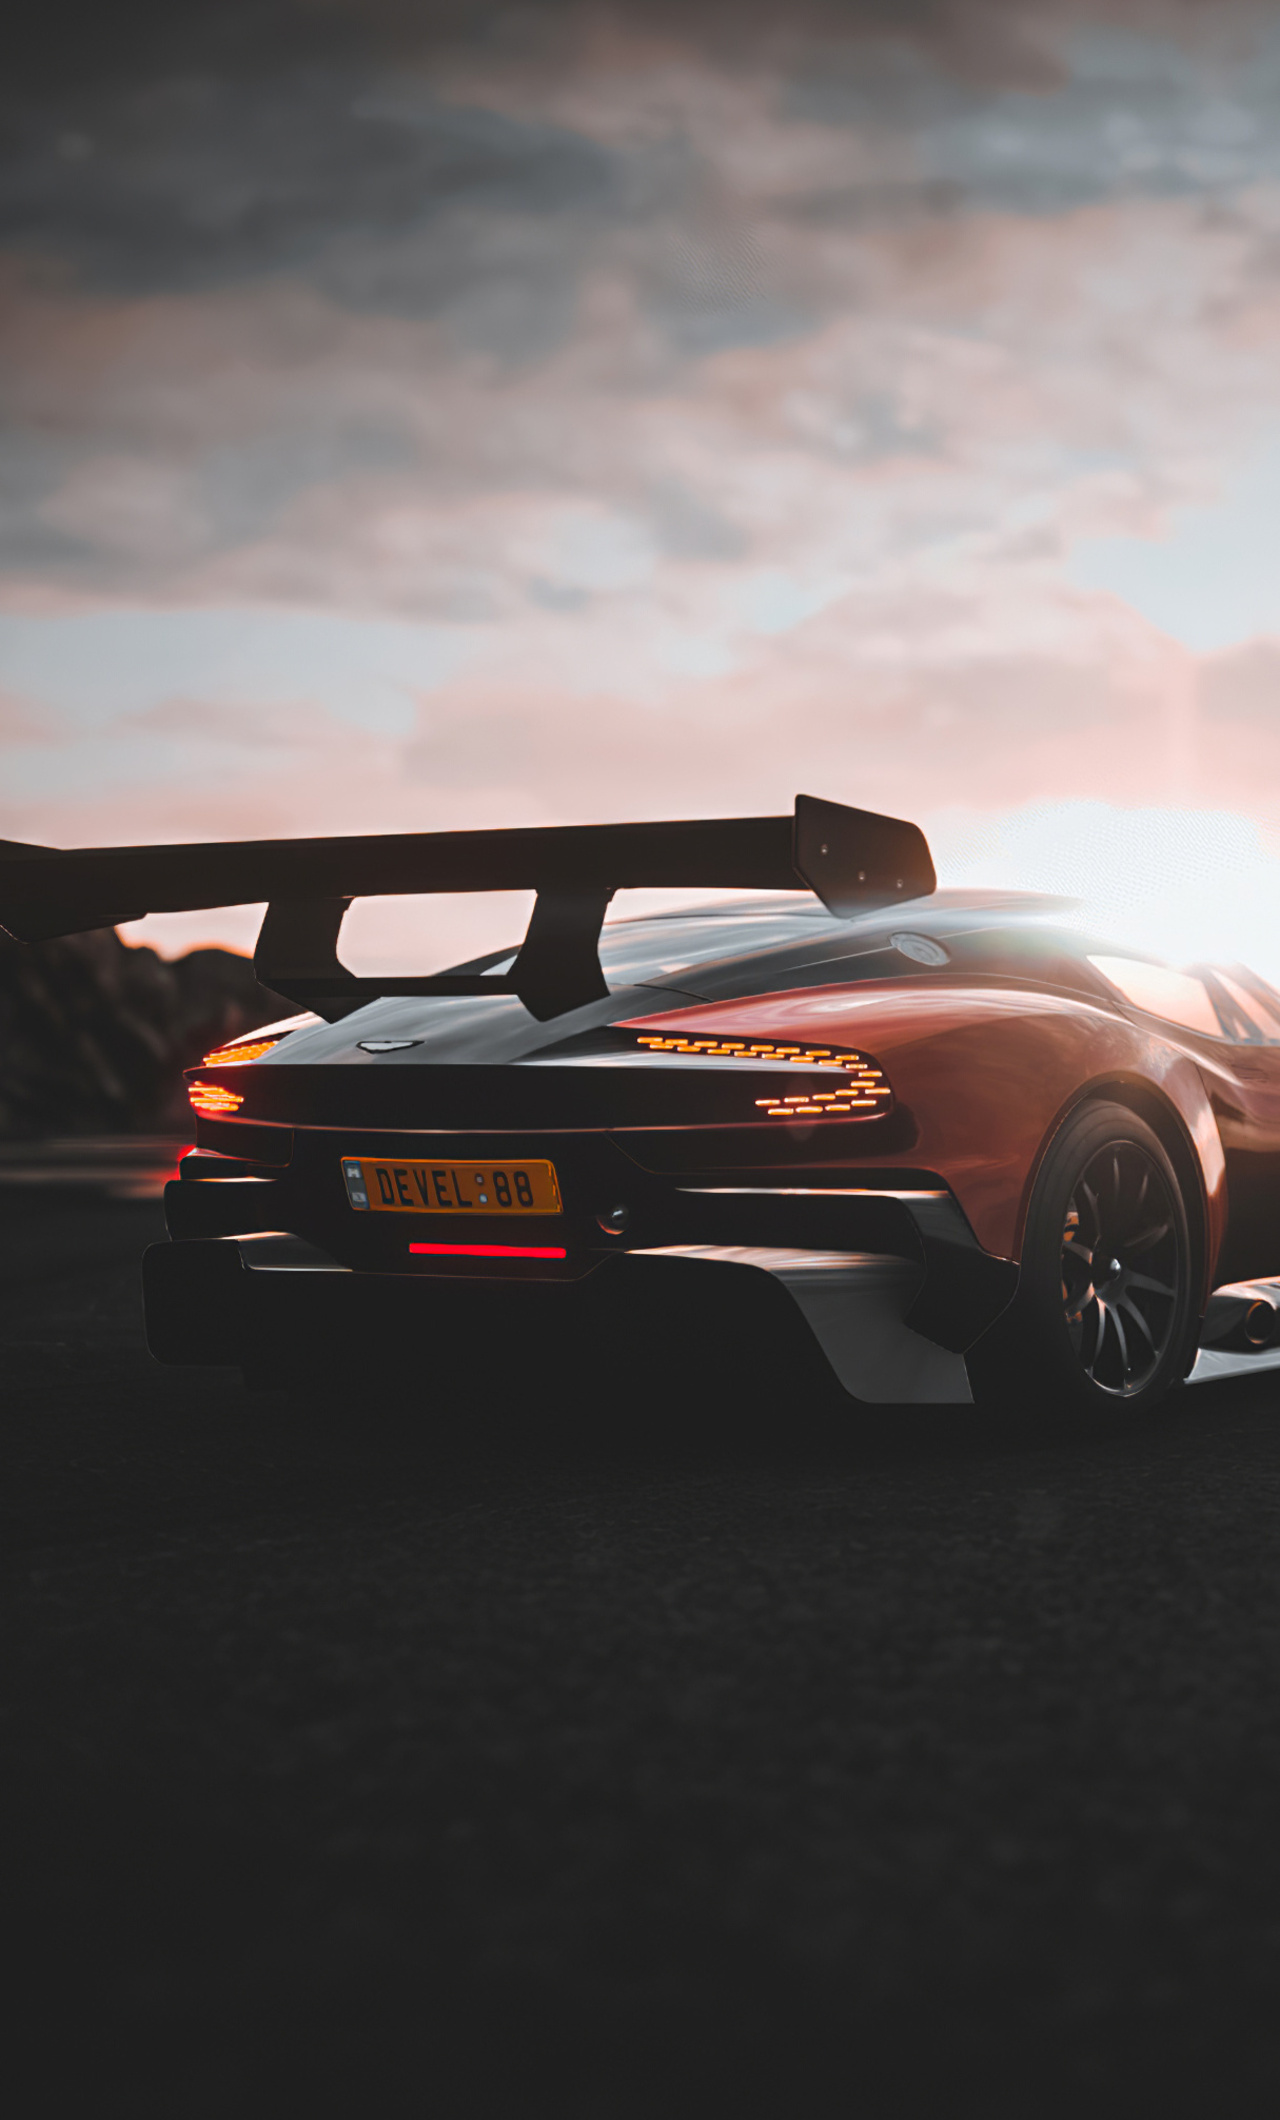 1280x2120 Aston Martin Vulcan Horizon 4 4k Iphone 6 Hd 4k Wallpapers Images Backgrounds Photos And Pictures